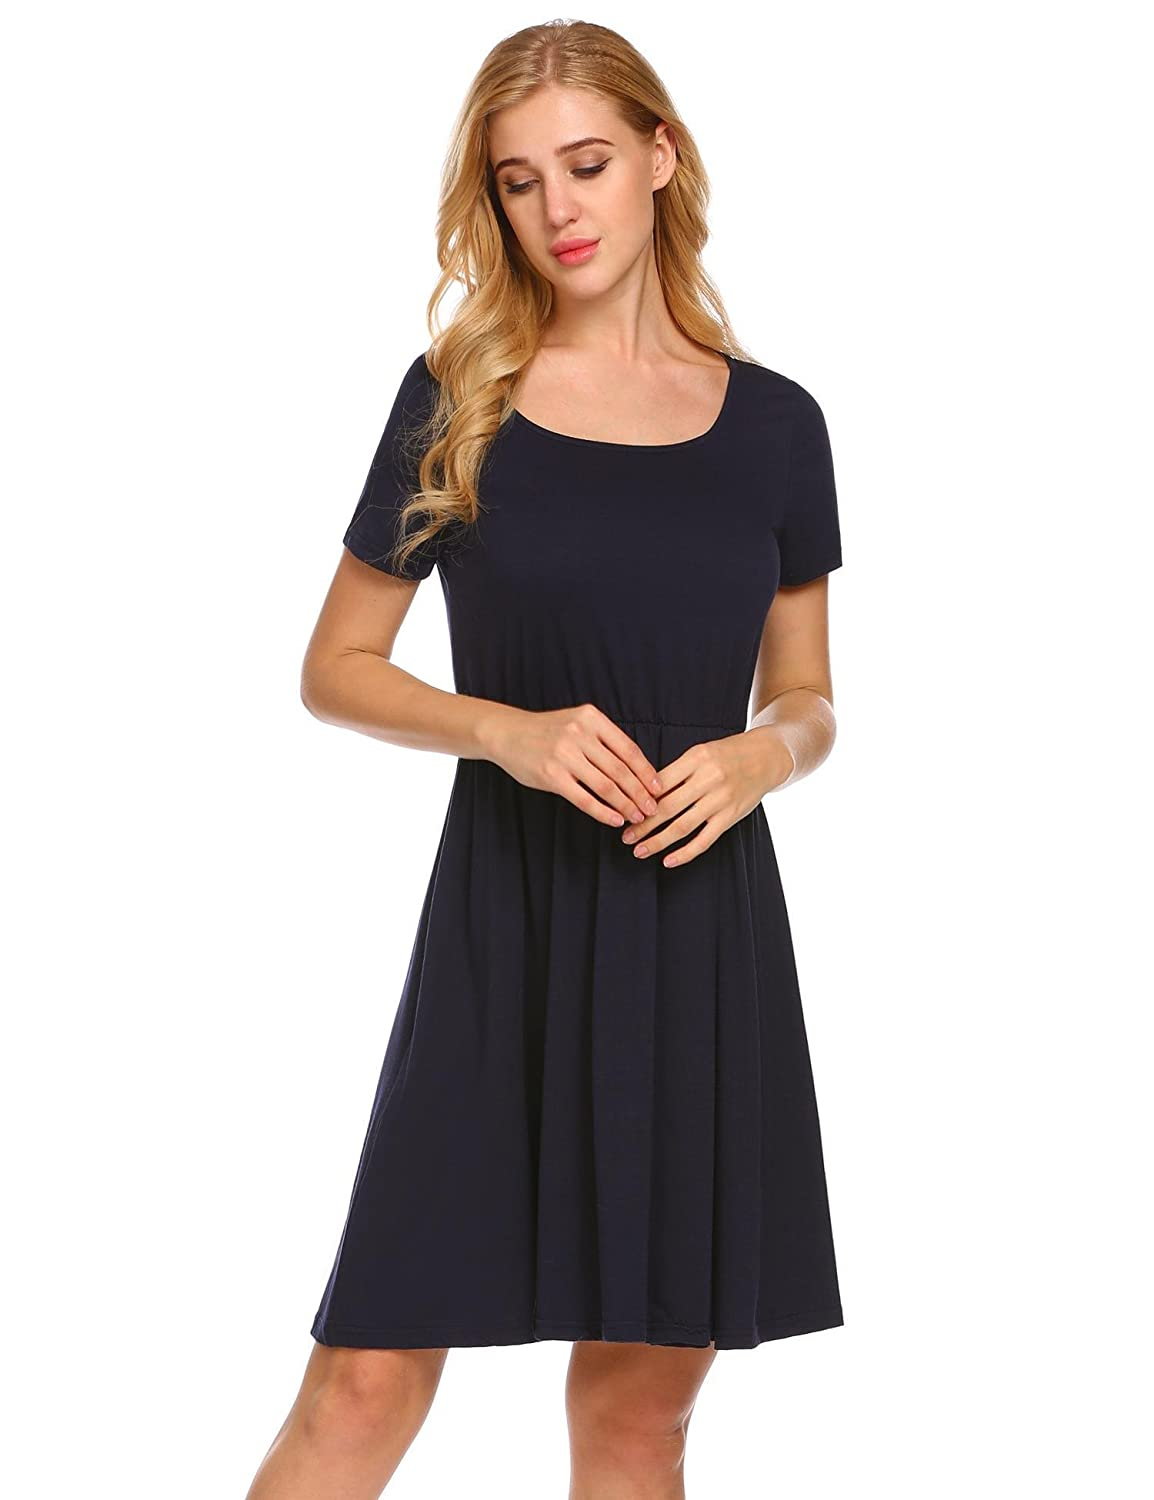 fef8a32f5ed1 pasttry Women's Casual Solid Empire Waist Short Sleeve Above Knee Length  Fit Flare A Line Dress at Amazon Women's Clothing store: